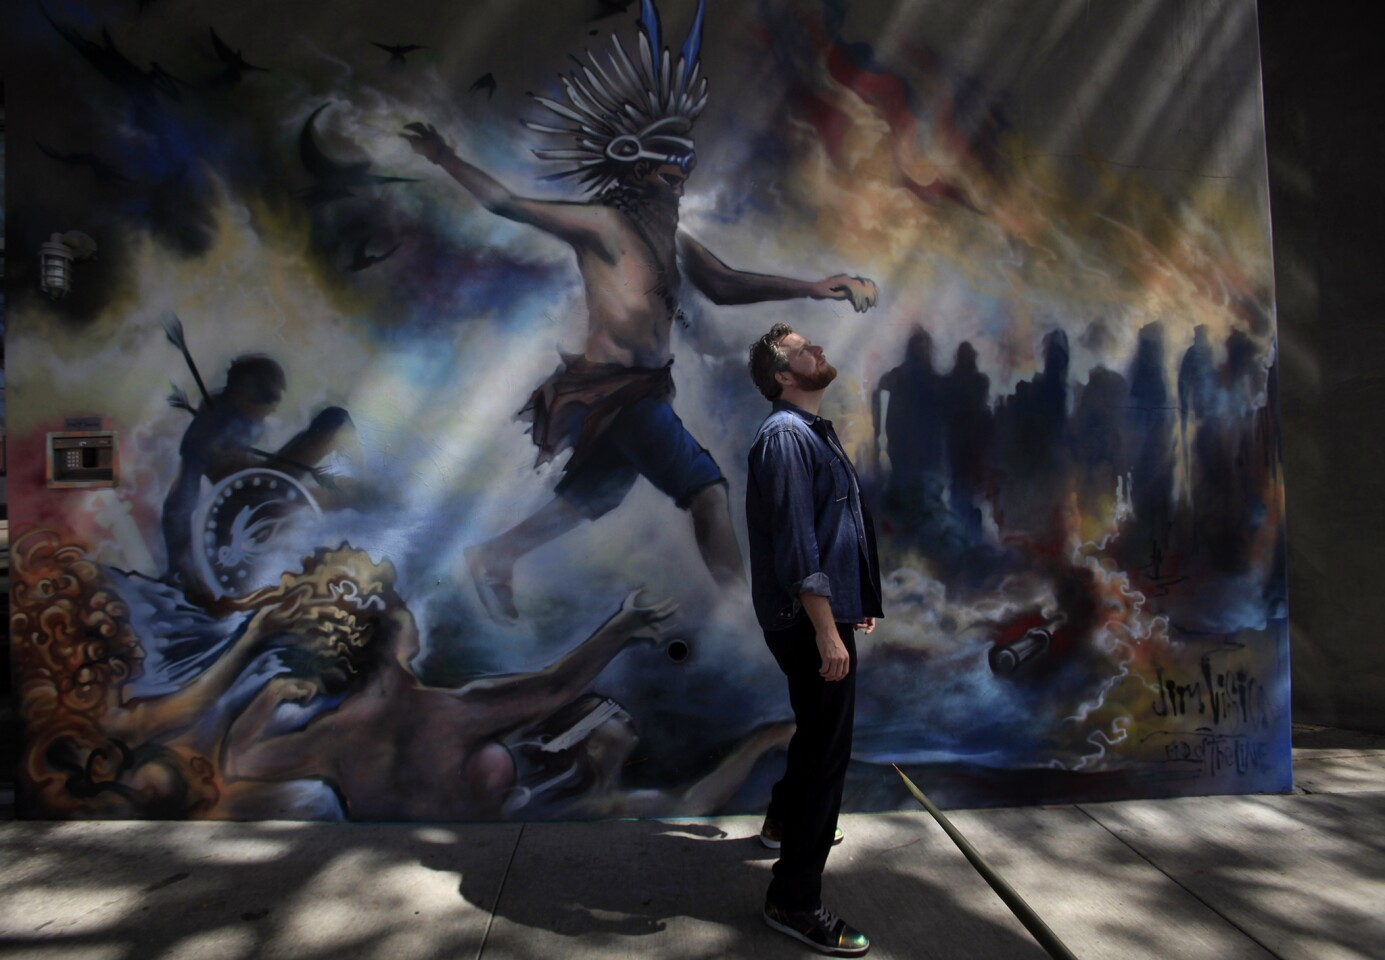 Oliver Luckett, cofounder and chief executive of tech start-up theAudience, stands in front of a mural painted by street artist Jim Rockwell, a.k.a. Jim Vision, on one of his offices in Los Angeles.